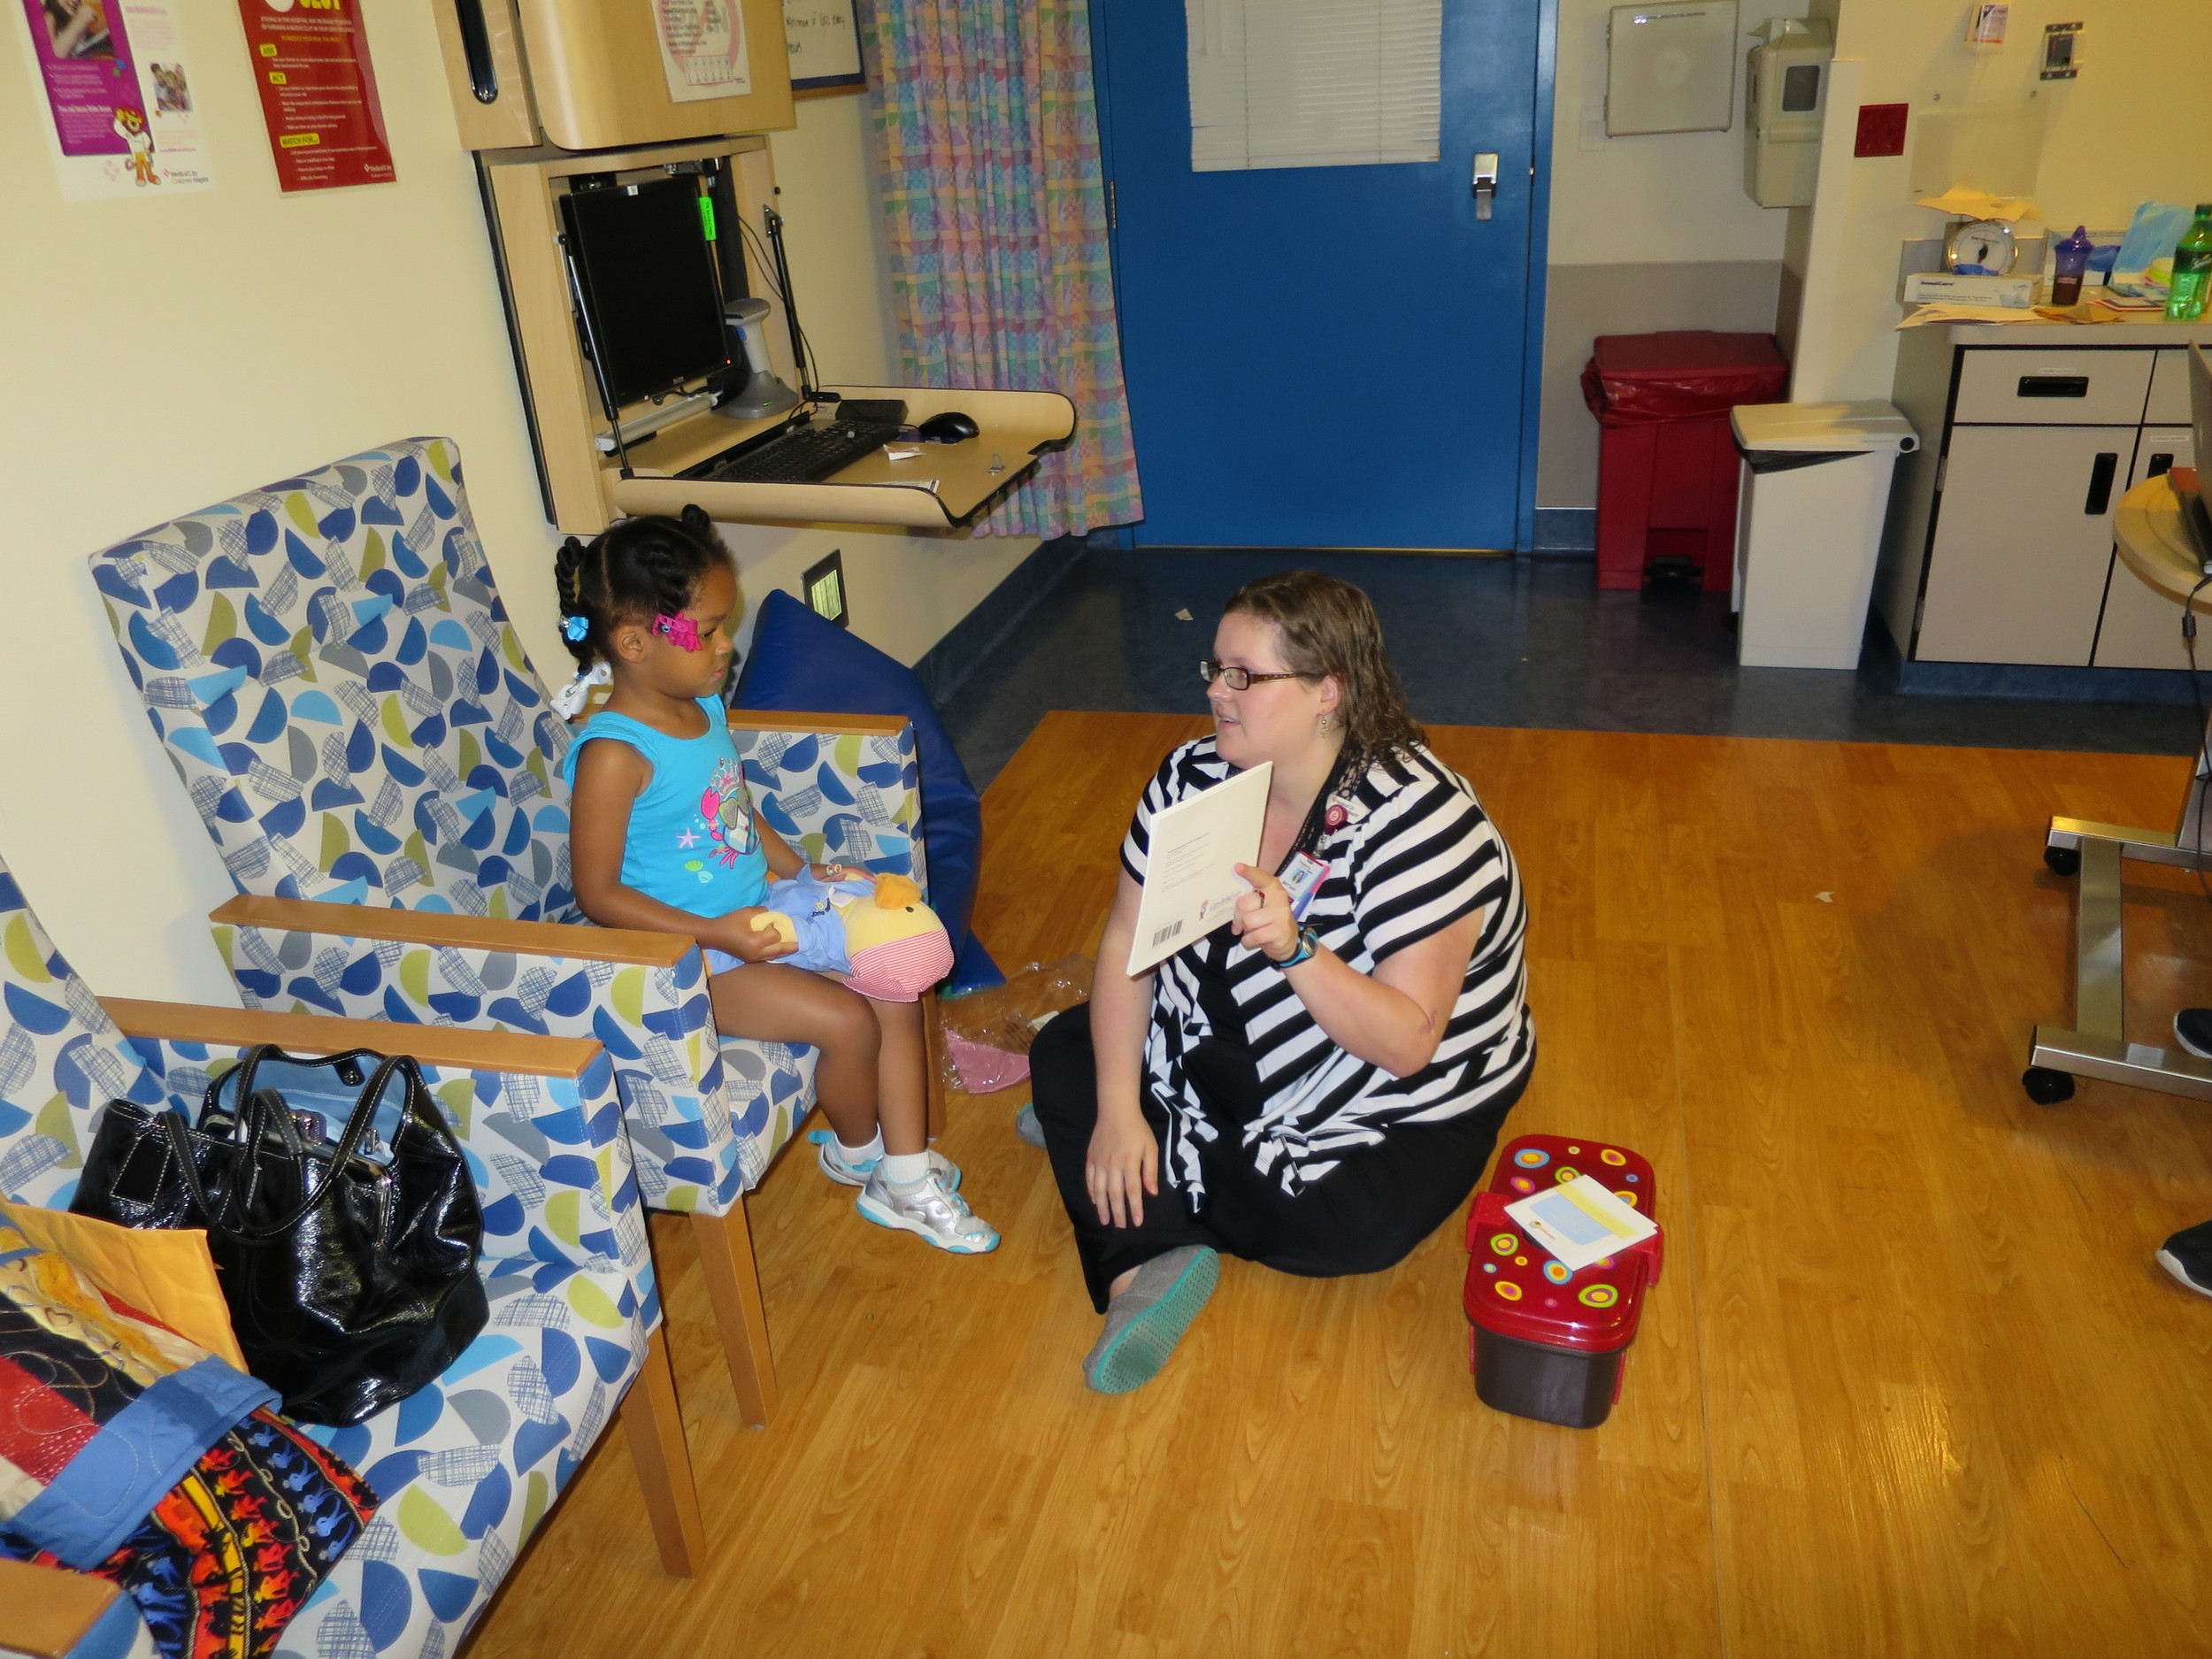 Day 5: Laurel and the Child Life Specialist